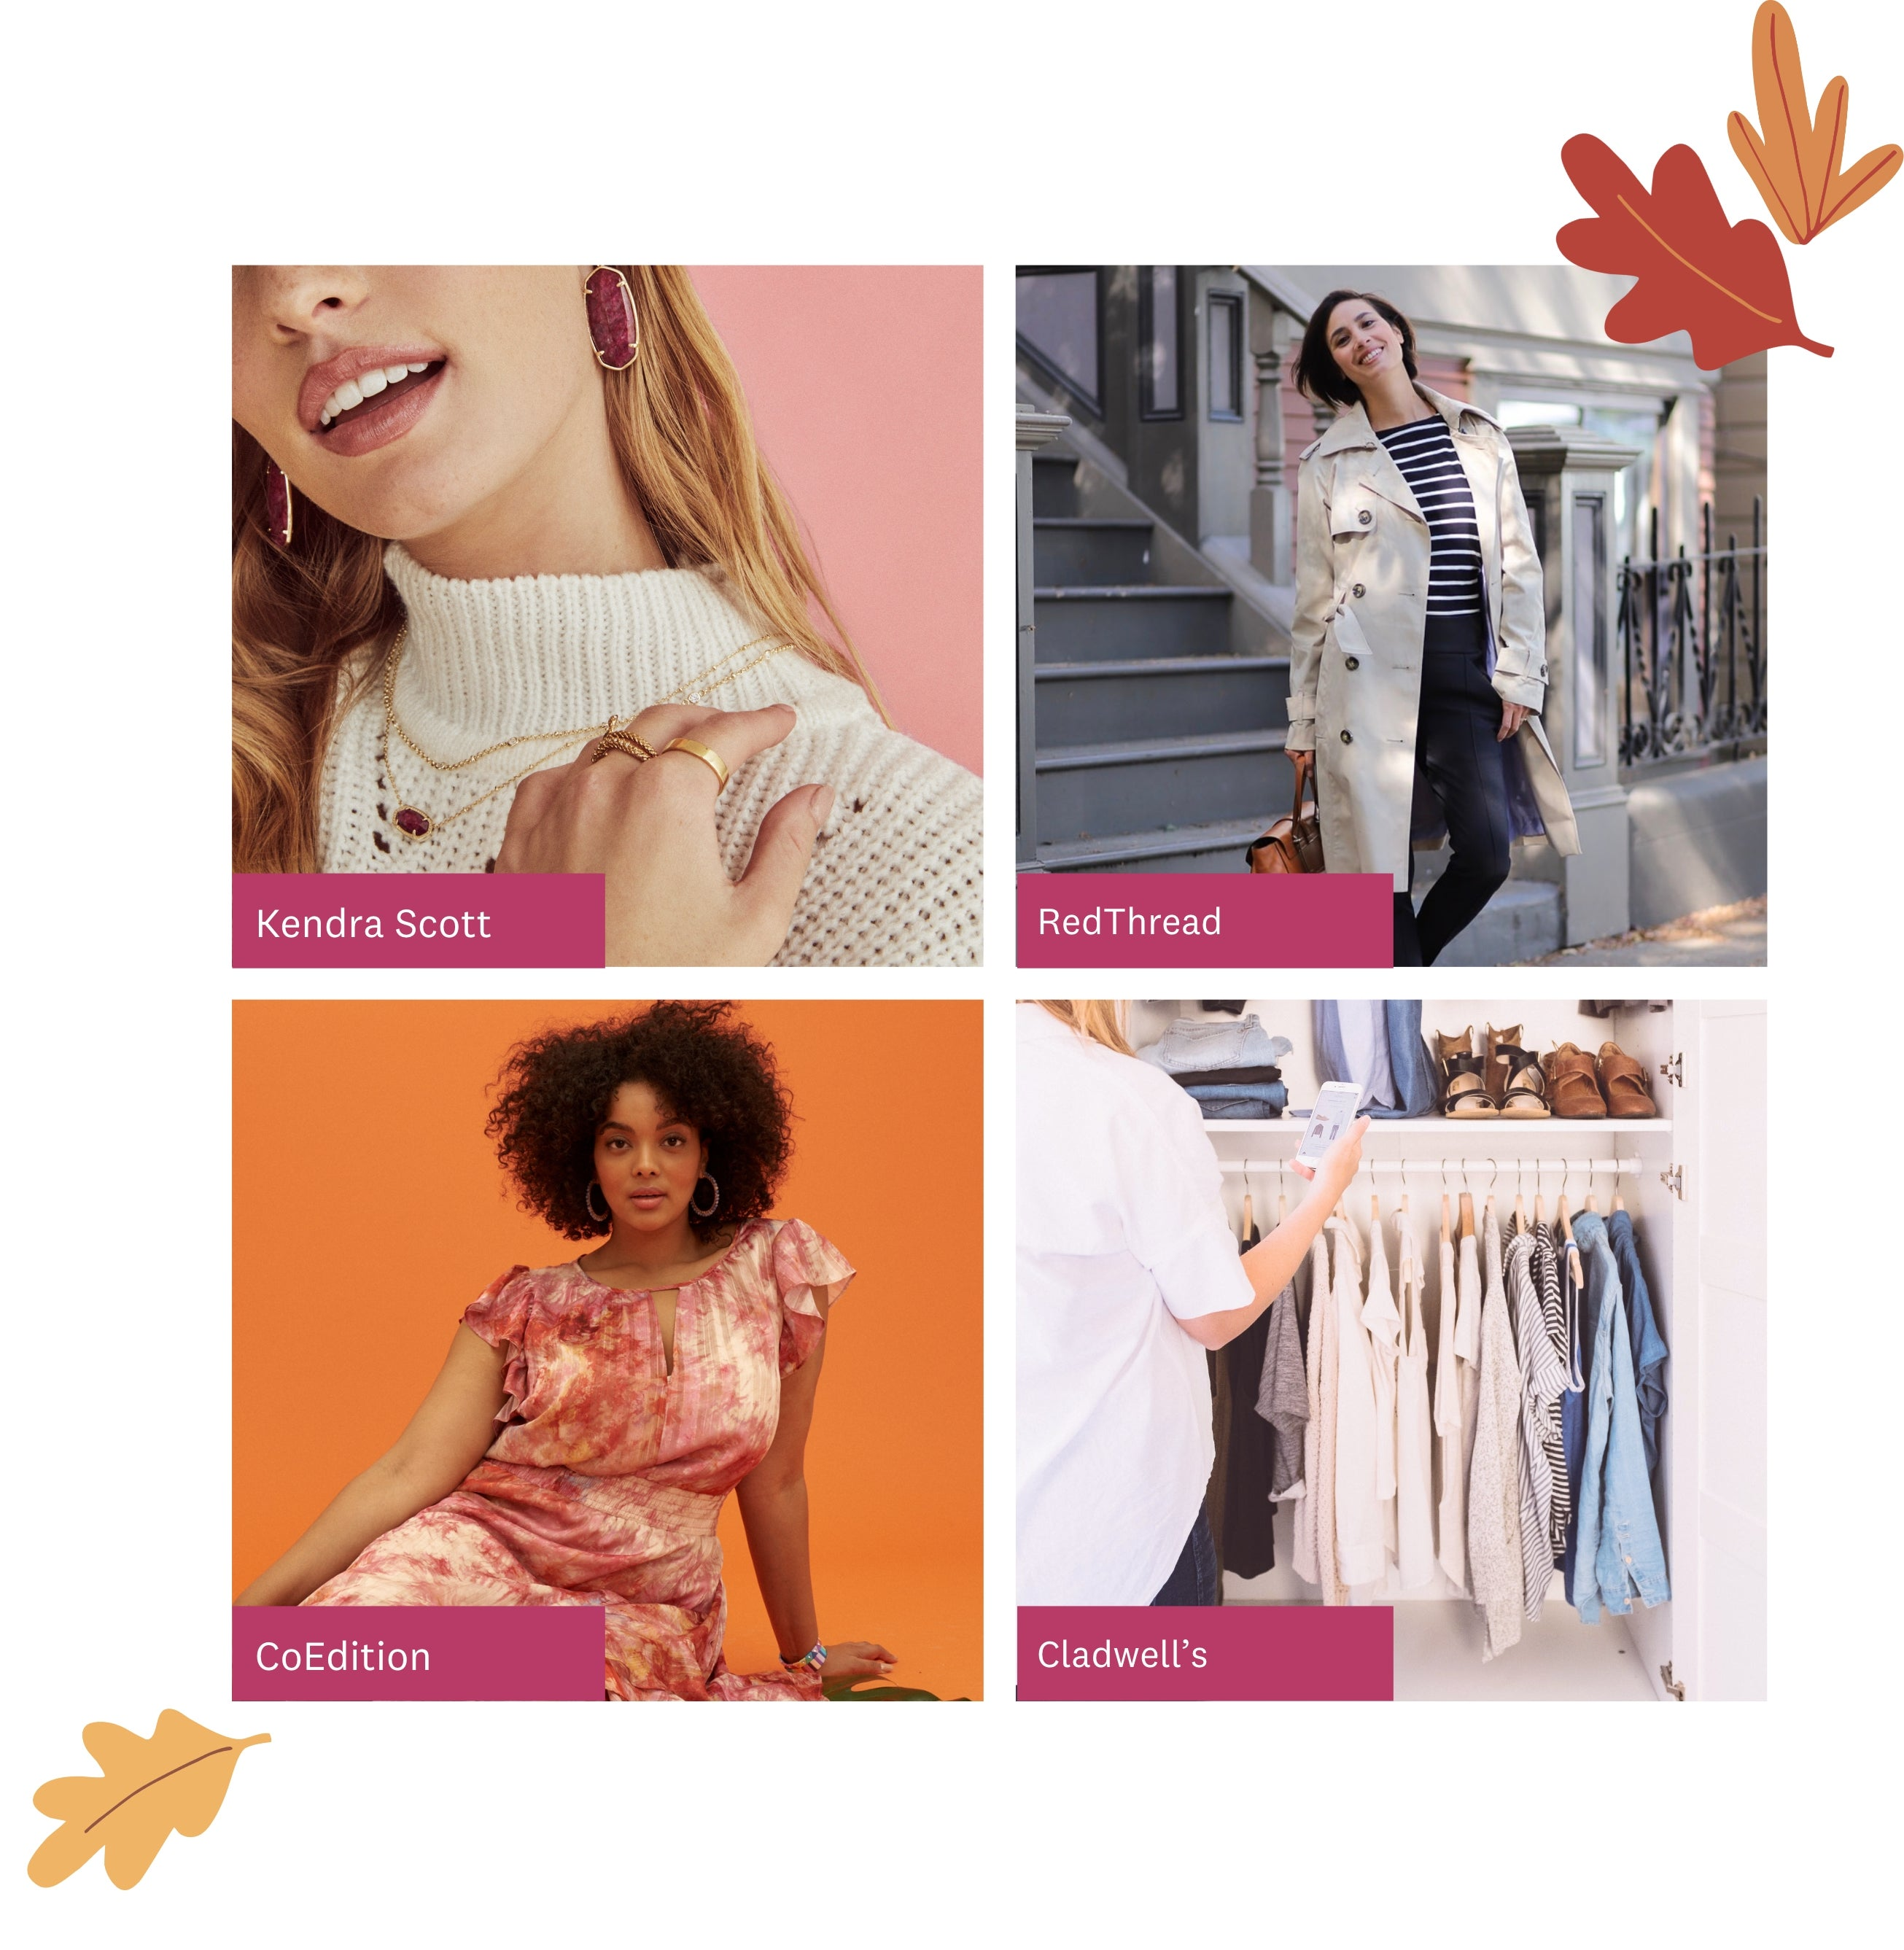 Four different designers clothing, including Kendra Scott, RedThread, CoEdition and Cladwell's, available from Refresh Your Closet.